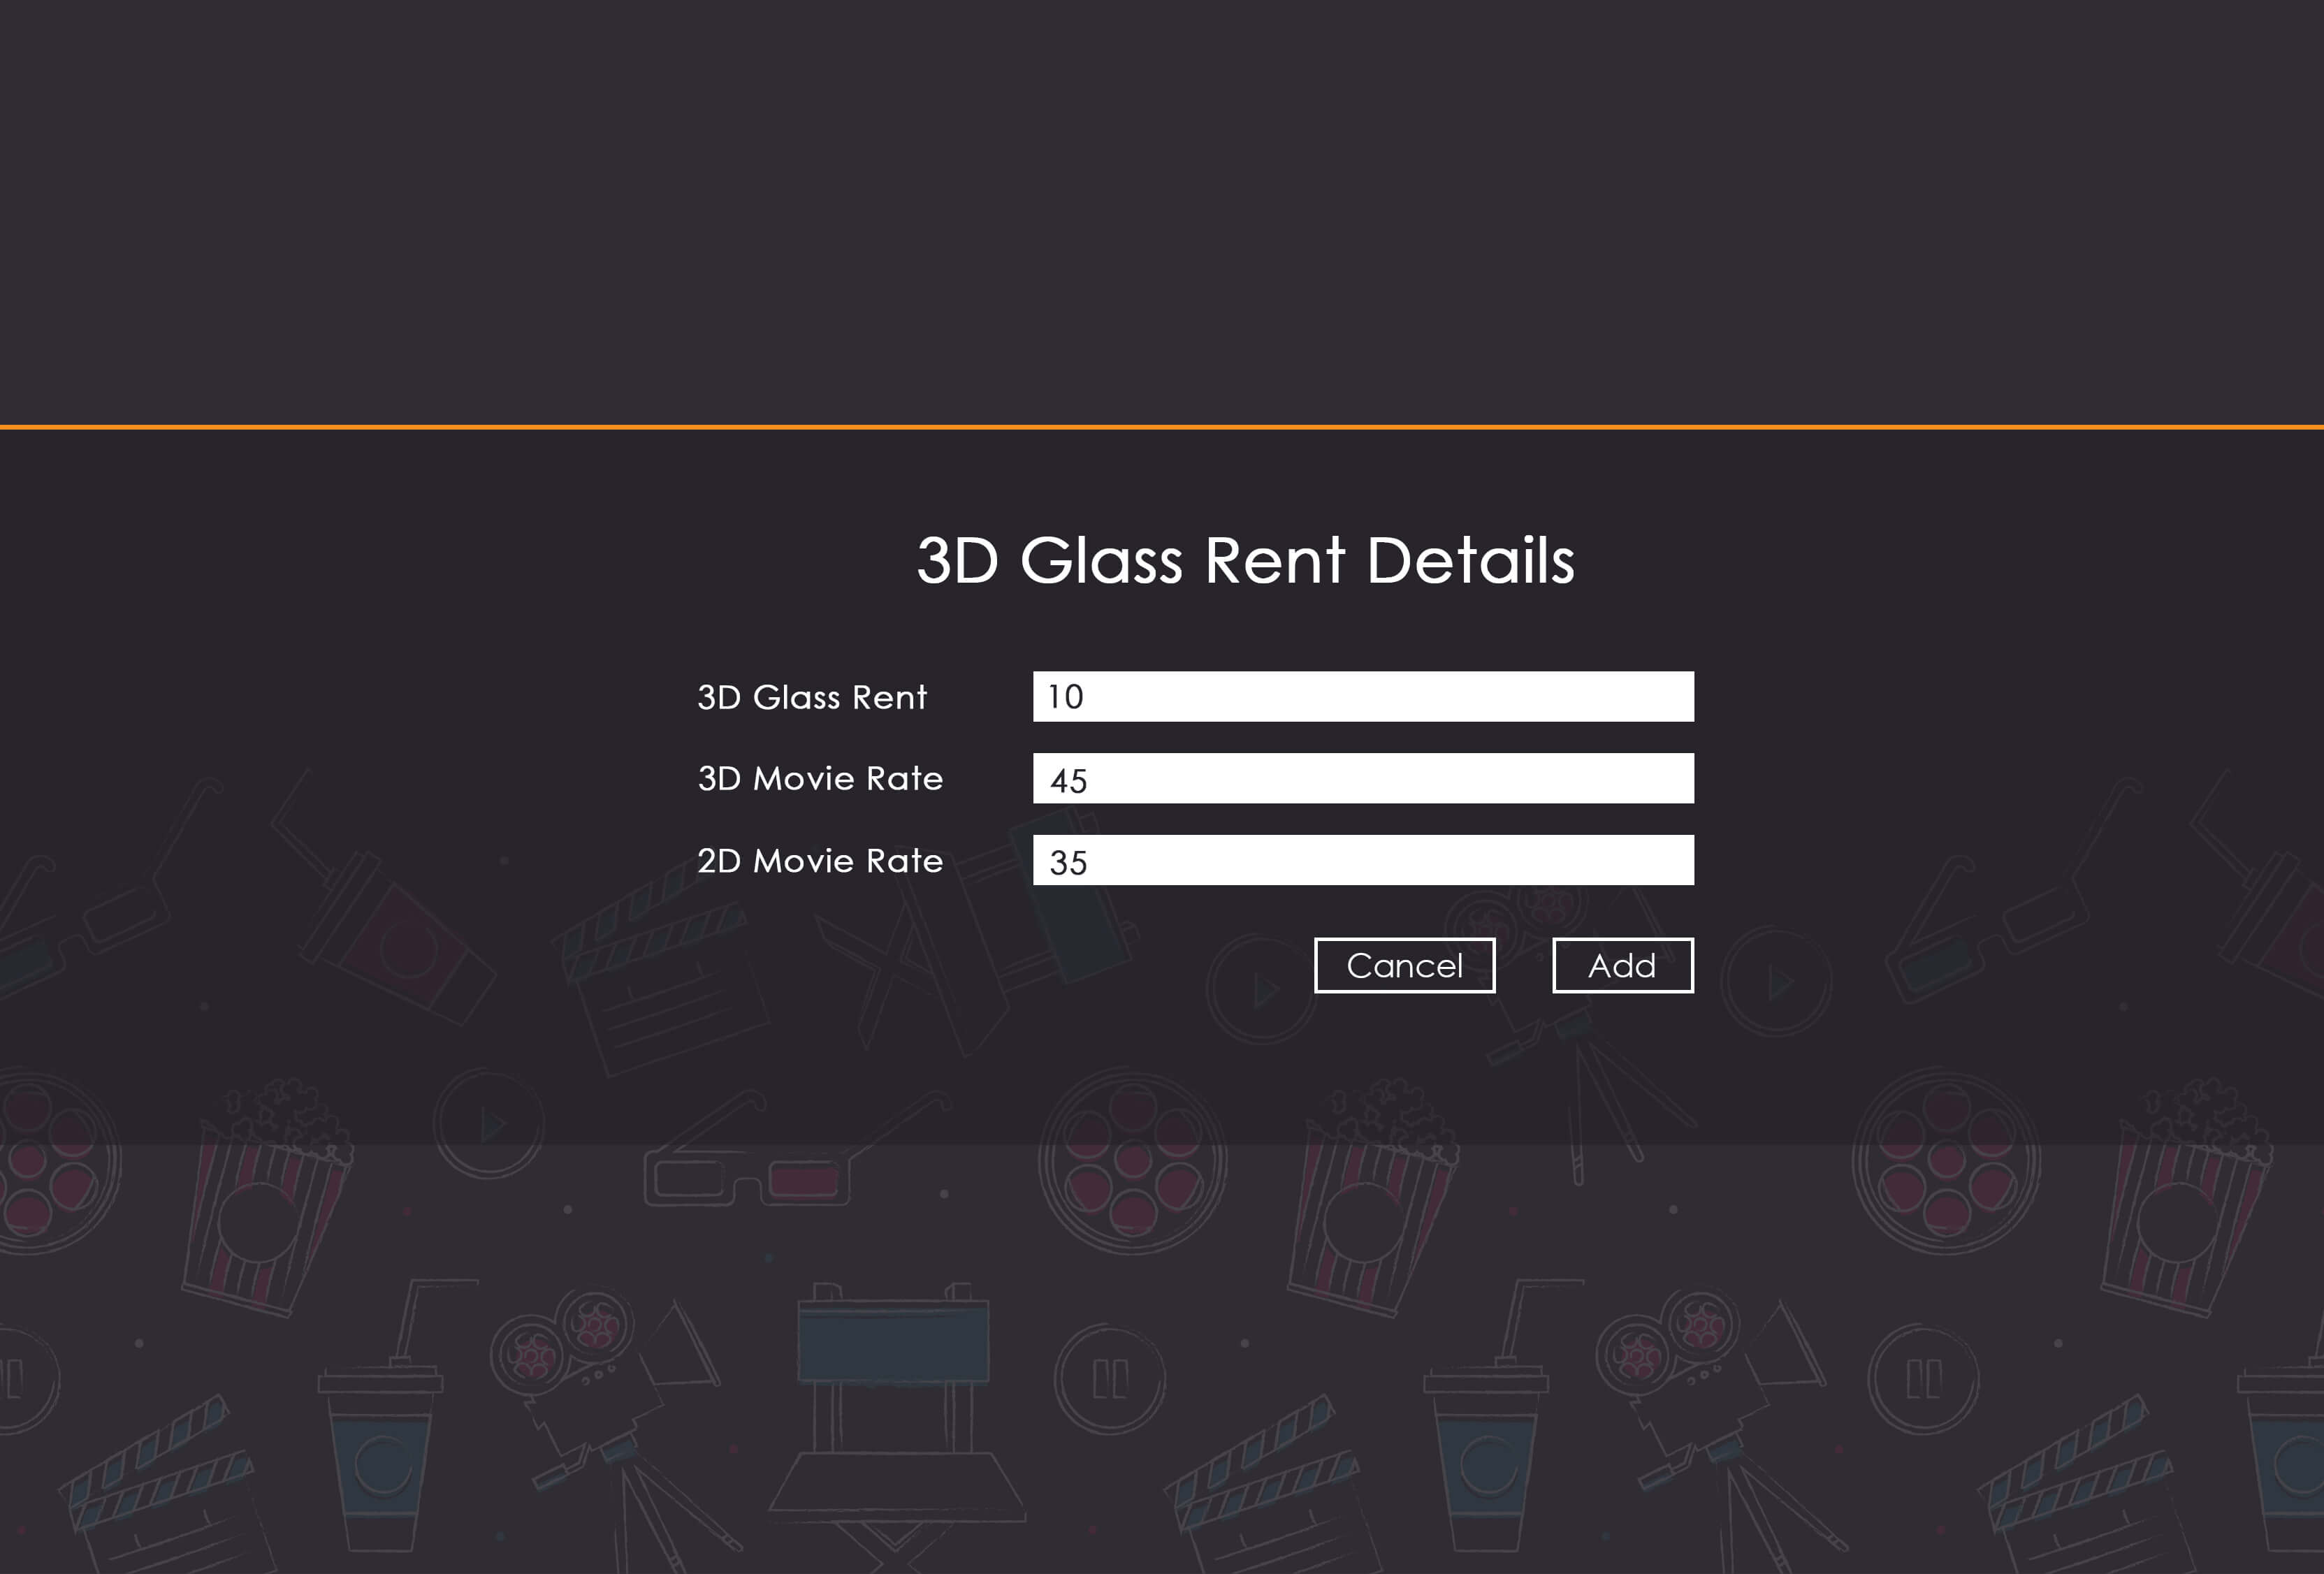 3D-Glass-Rent-Details-Screen